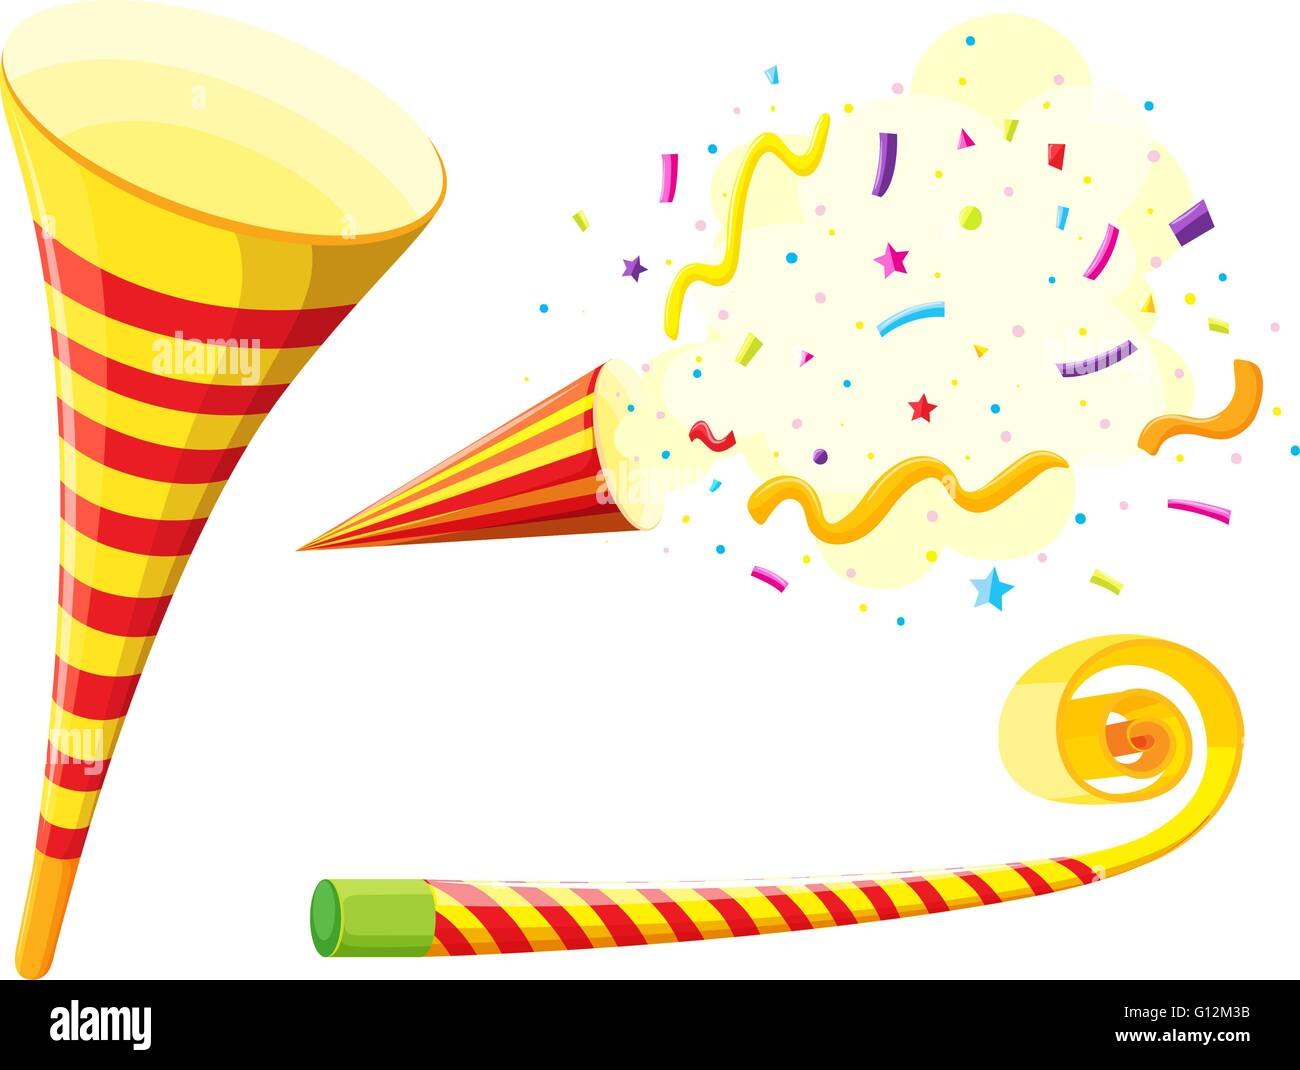 Party horn and blowing instrument illustration - Stock Vector